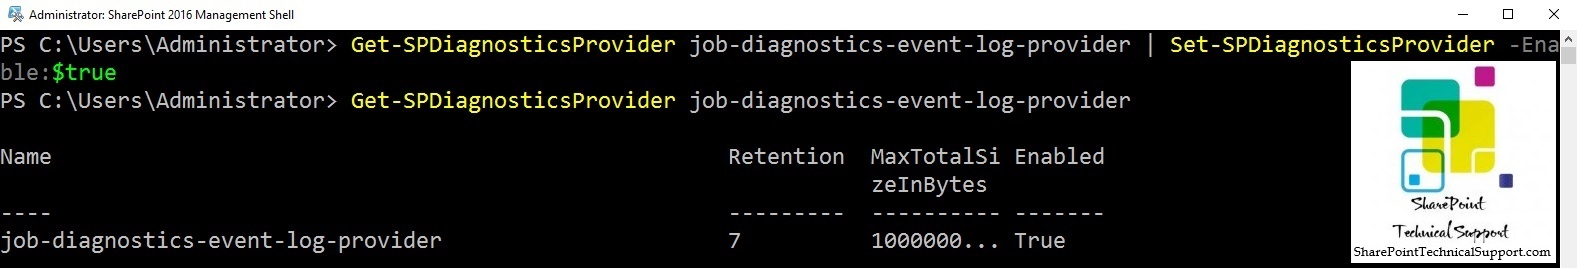 enable-job-diagnostics-event-log-provider-1577x268